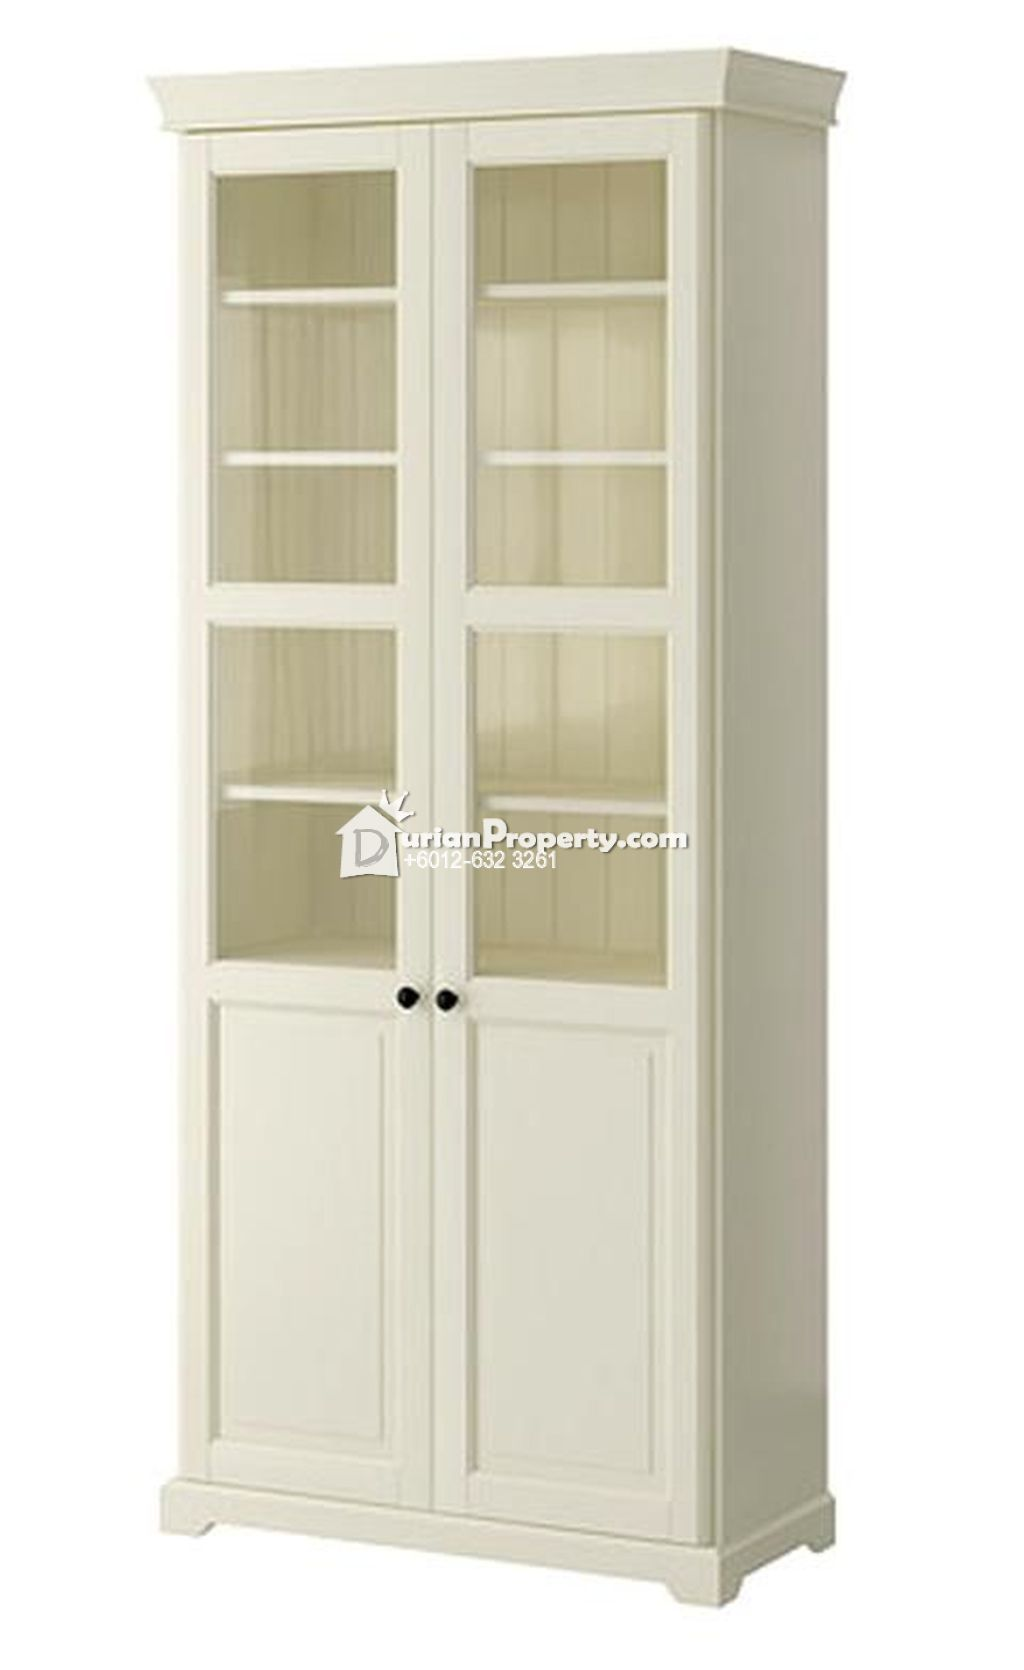 LIATORP Bookcase with glass doors For Sale